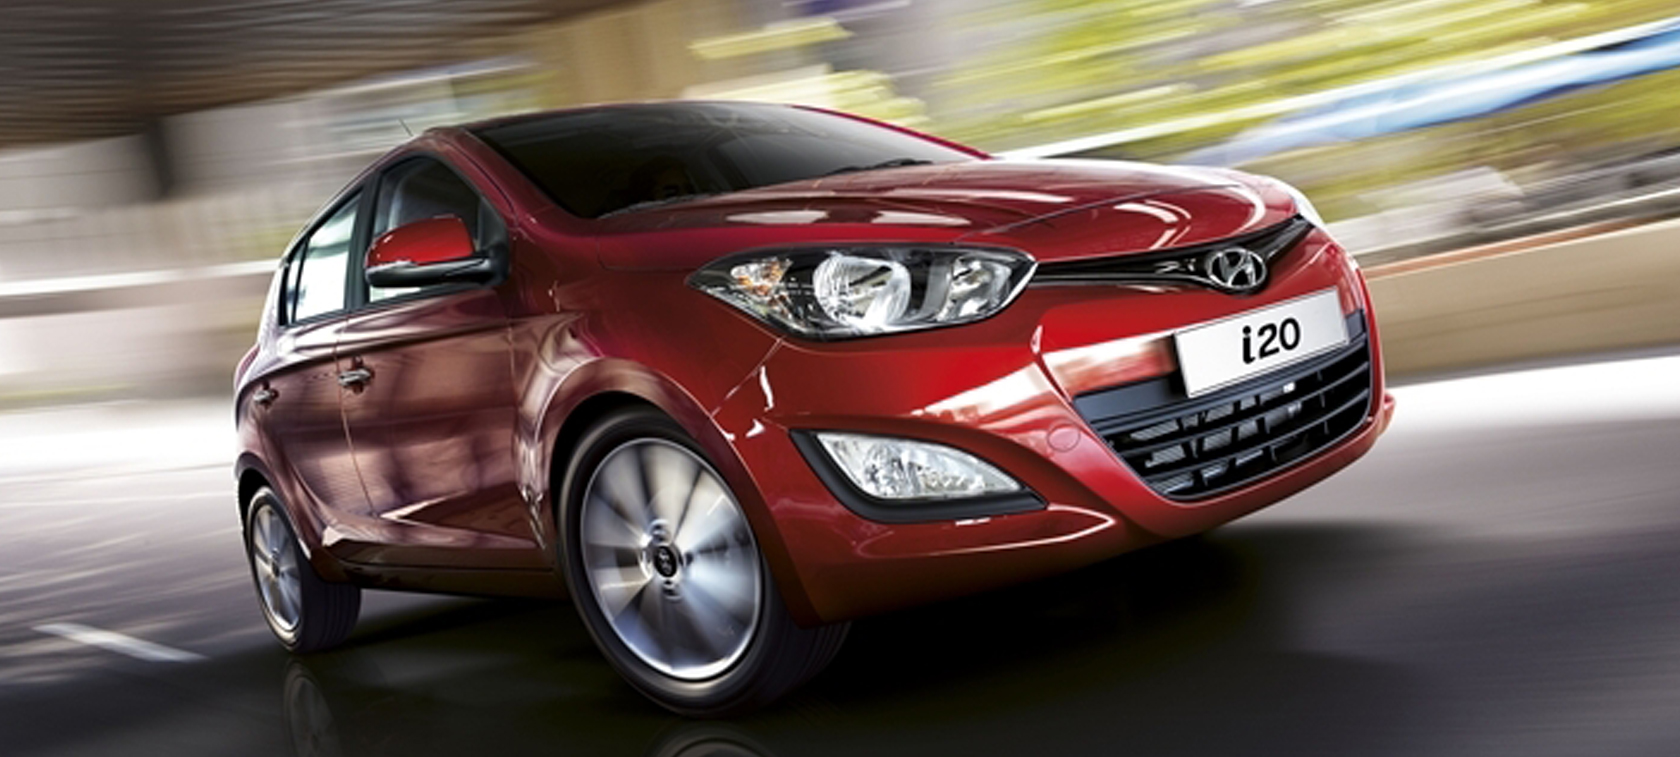 Gas from the dealership: Hyundai i20 LPG